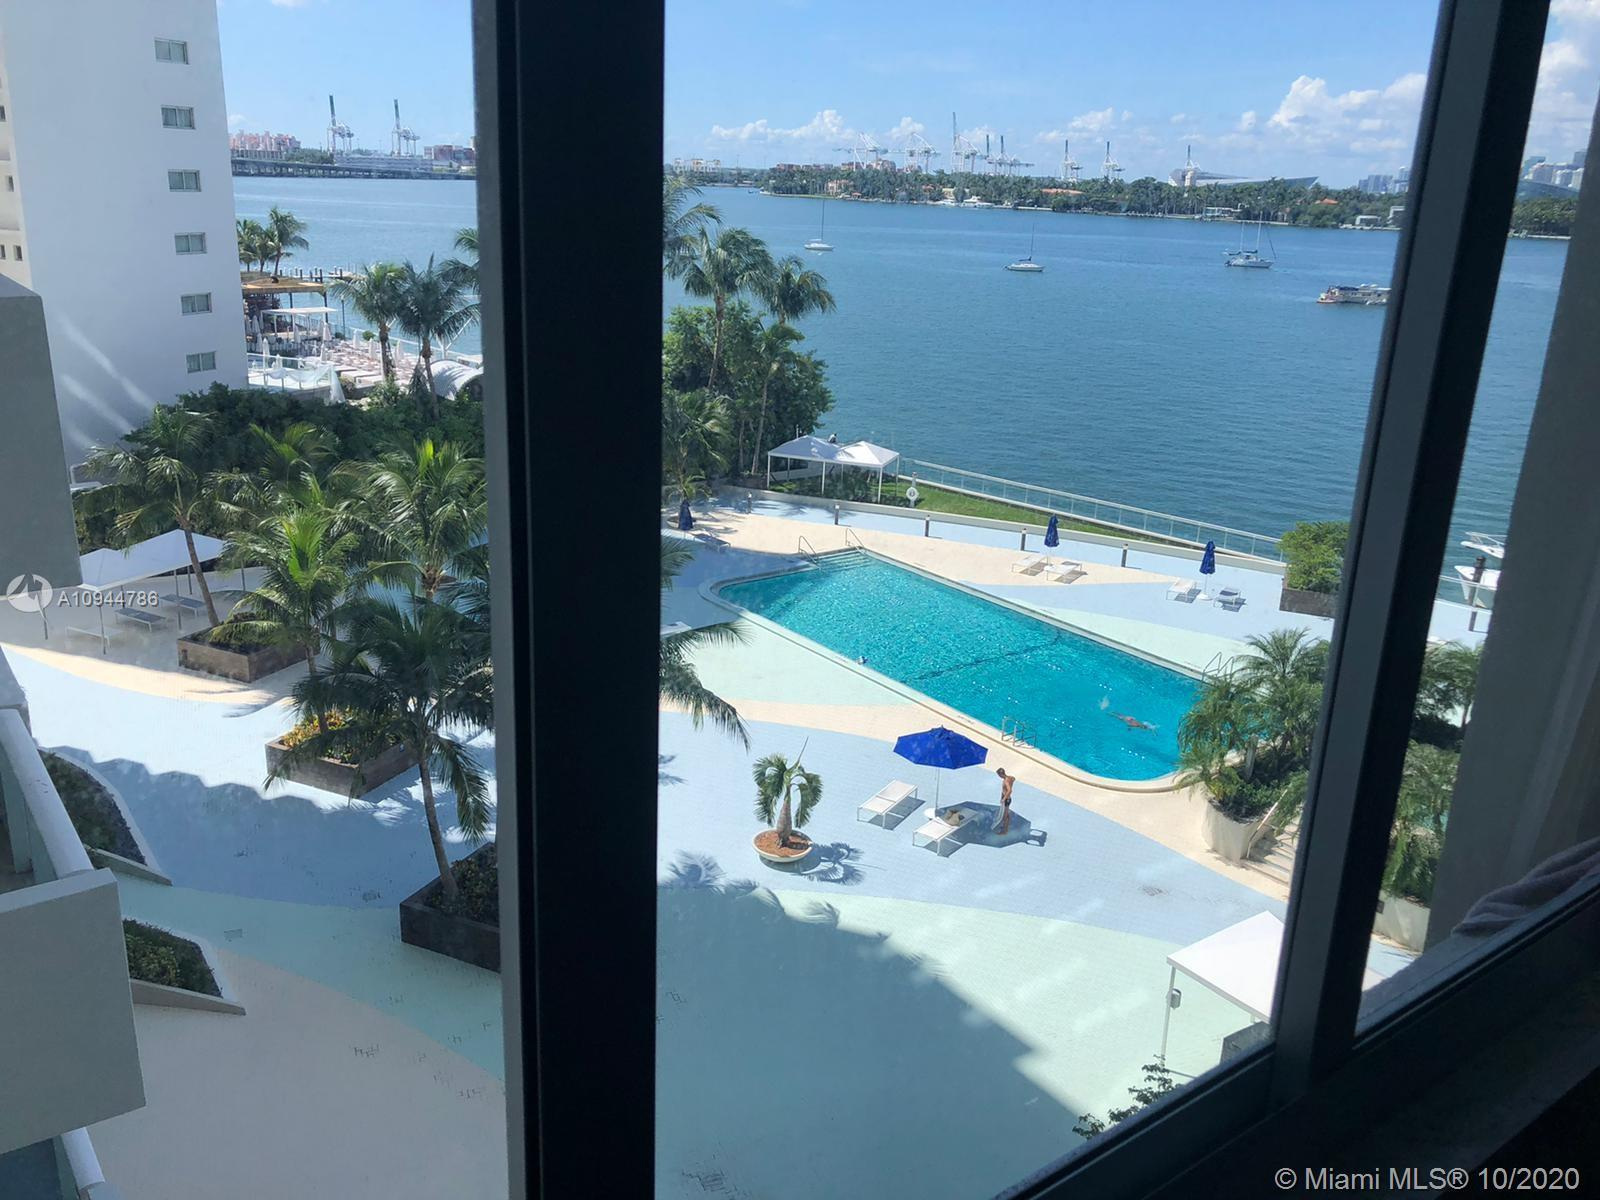 GREAT DEAL ON THIS VERY LARGE 1BED 1BATH. ALMOST 1000 SFT. GREAT BAY VIEW WITH LARGE HURRICANE IMPAC